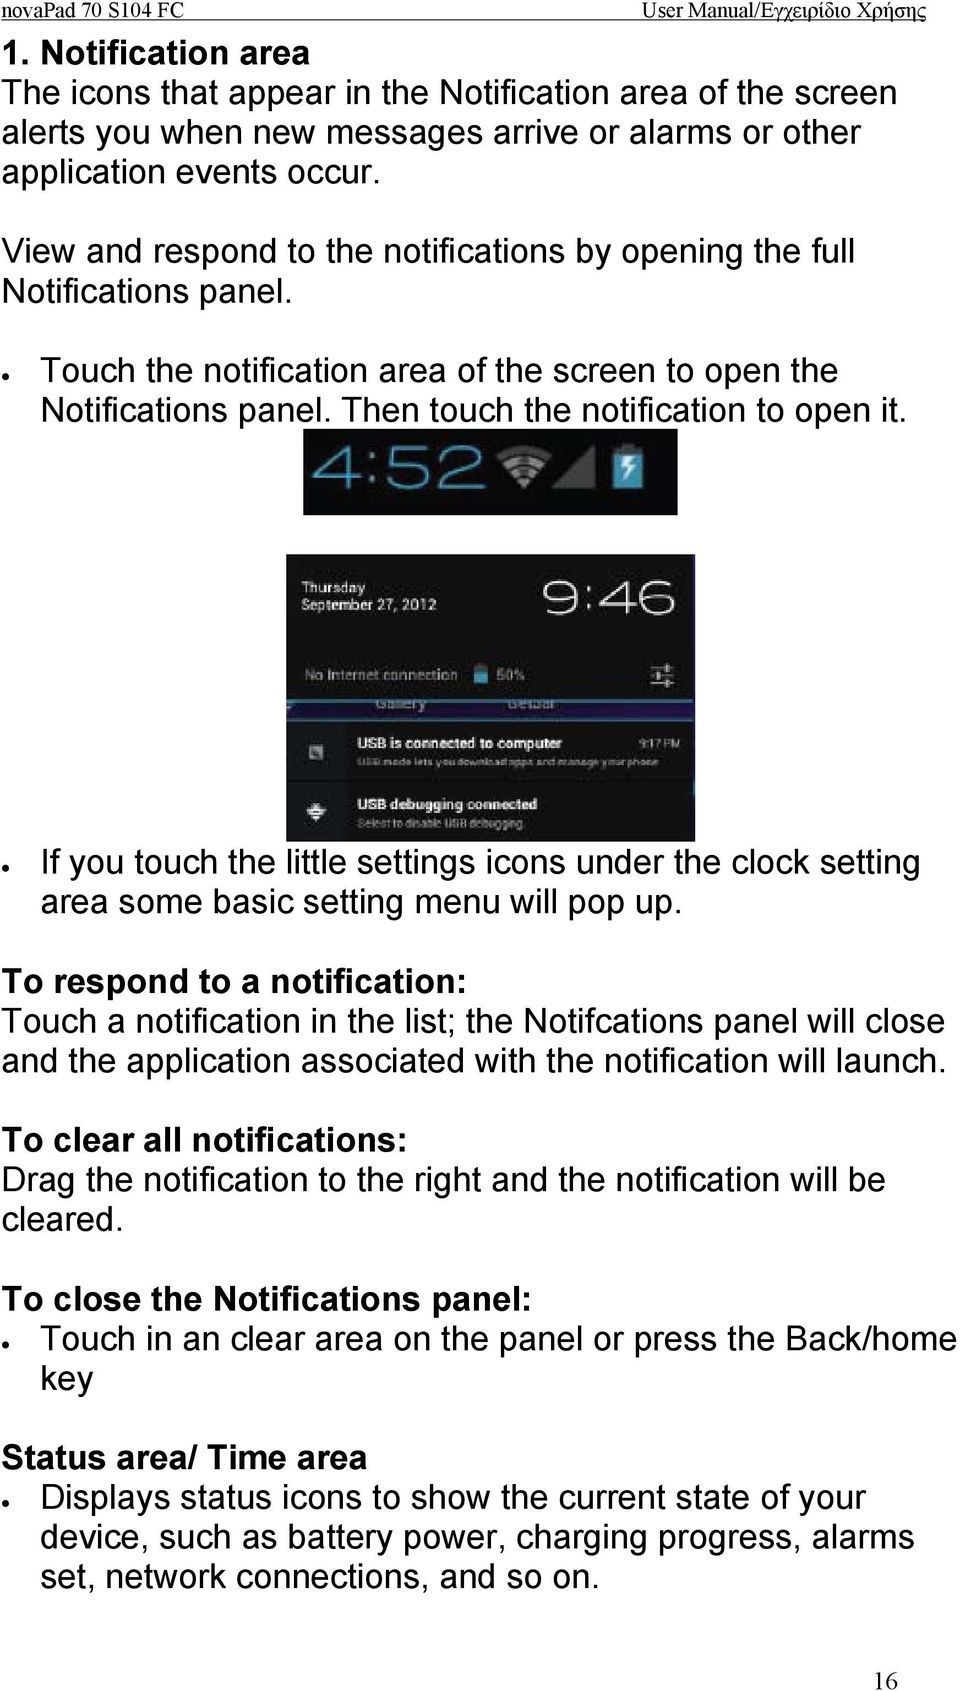 If you touch the little settings icons under the clock setting area some basic setting menu will pop up.